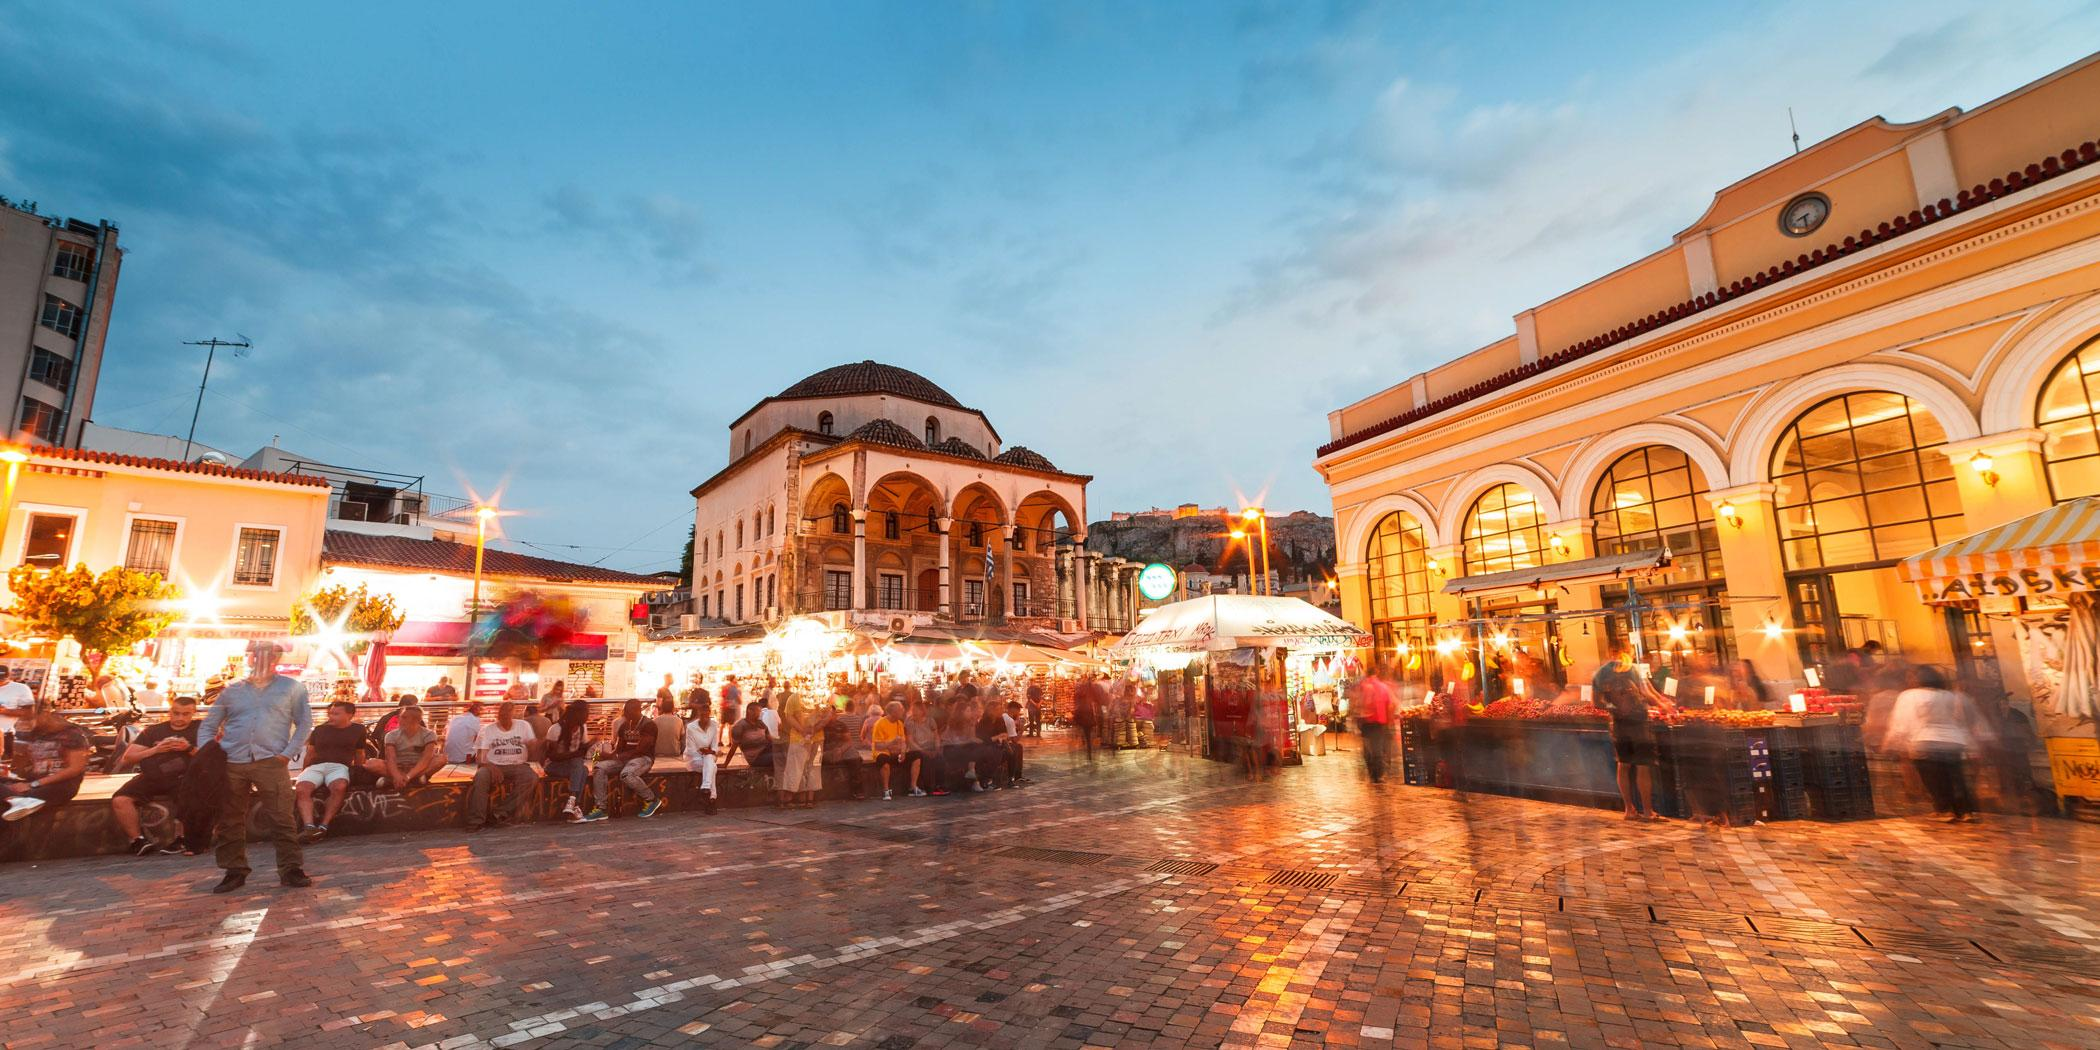 Monastiraki Square in Athens Greece at night. Photo: Adobe Stock